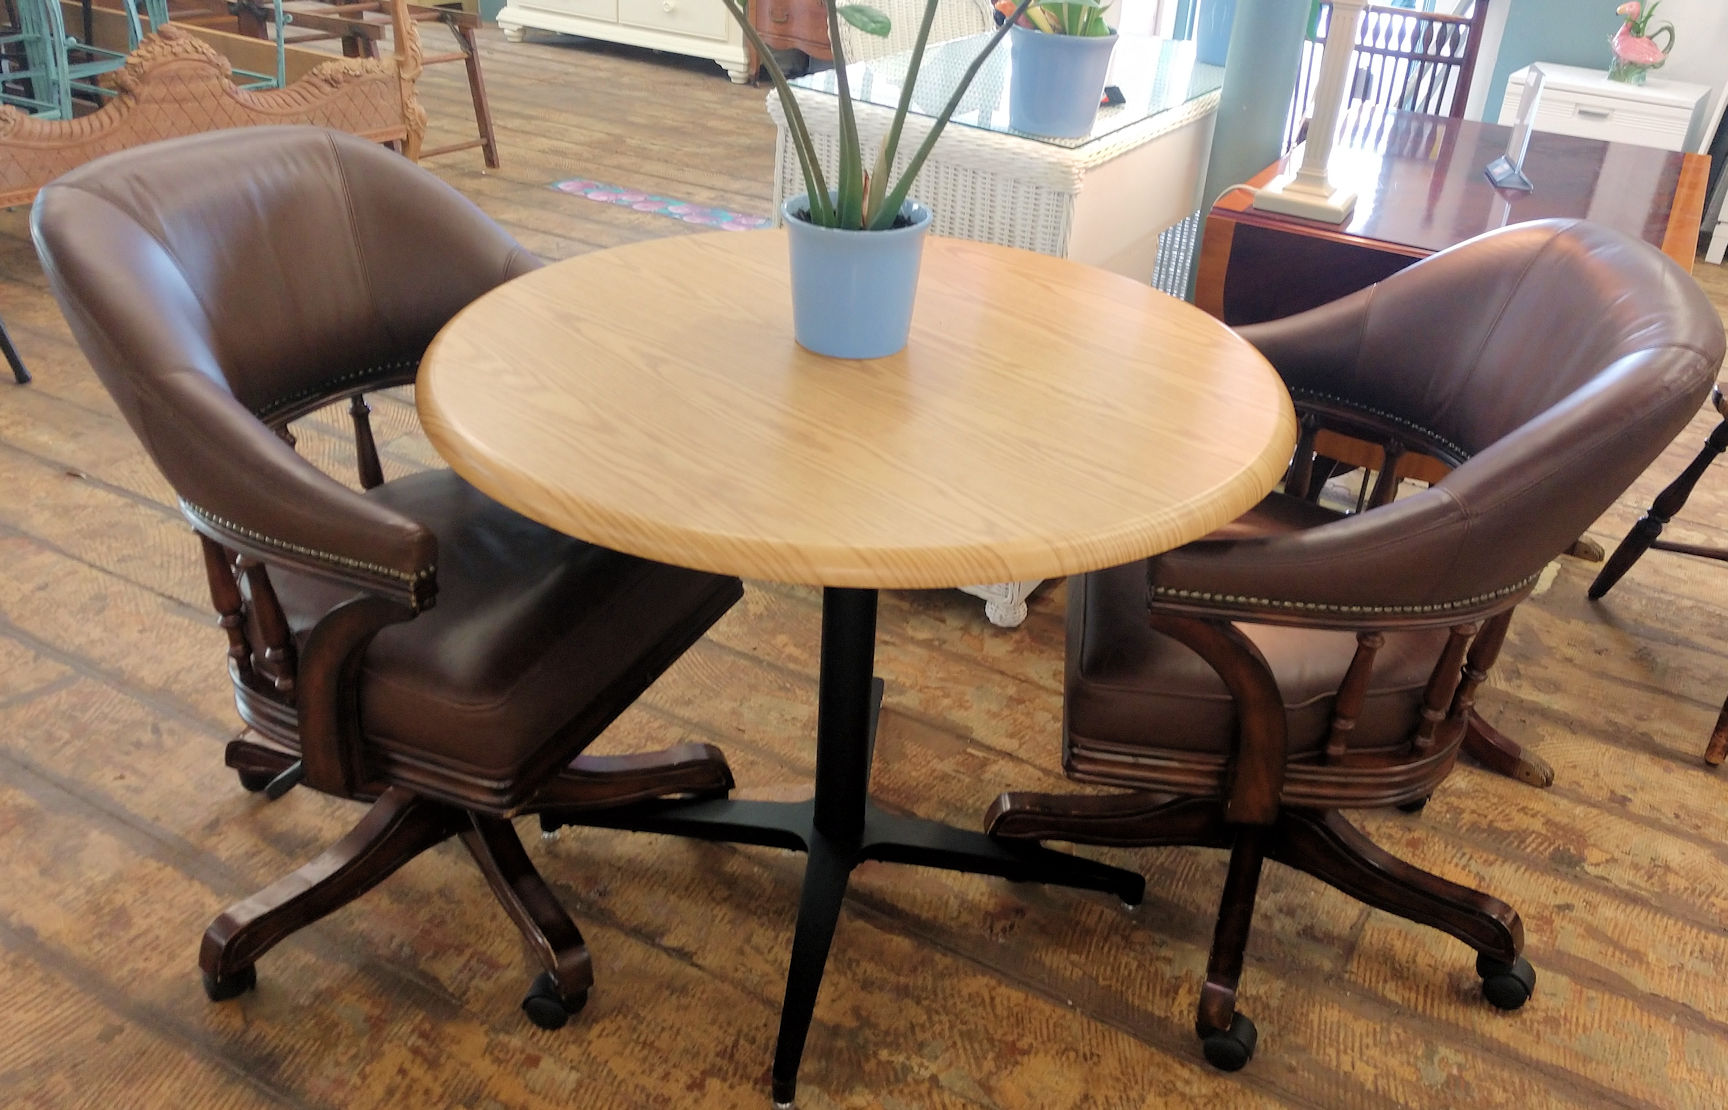 OF0024-Swivel-Chairs-at-table